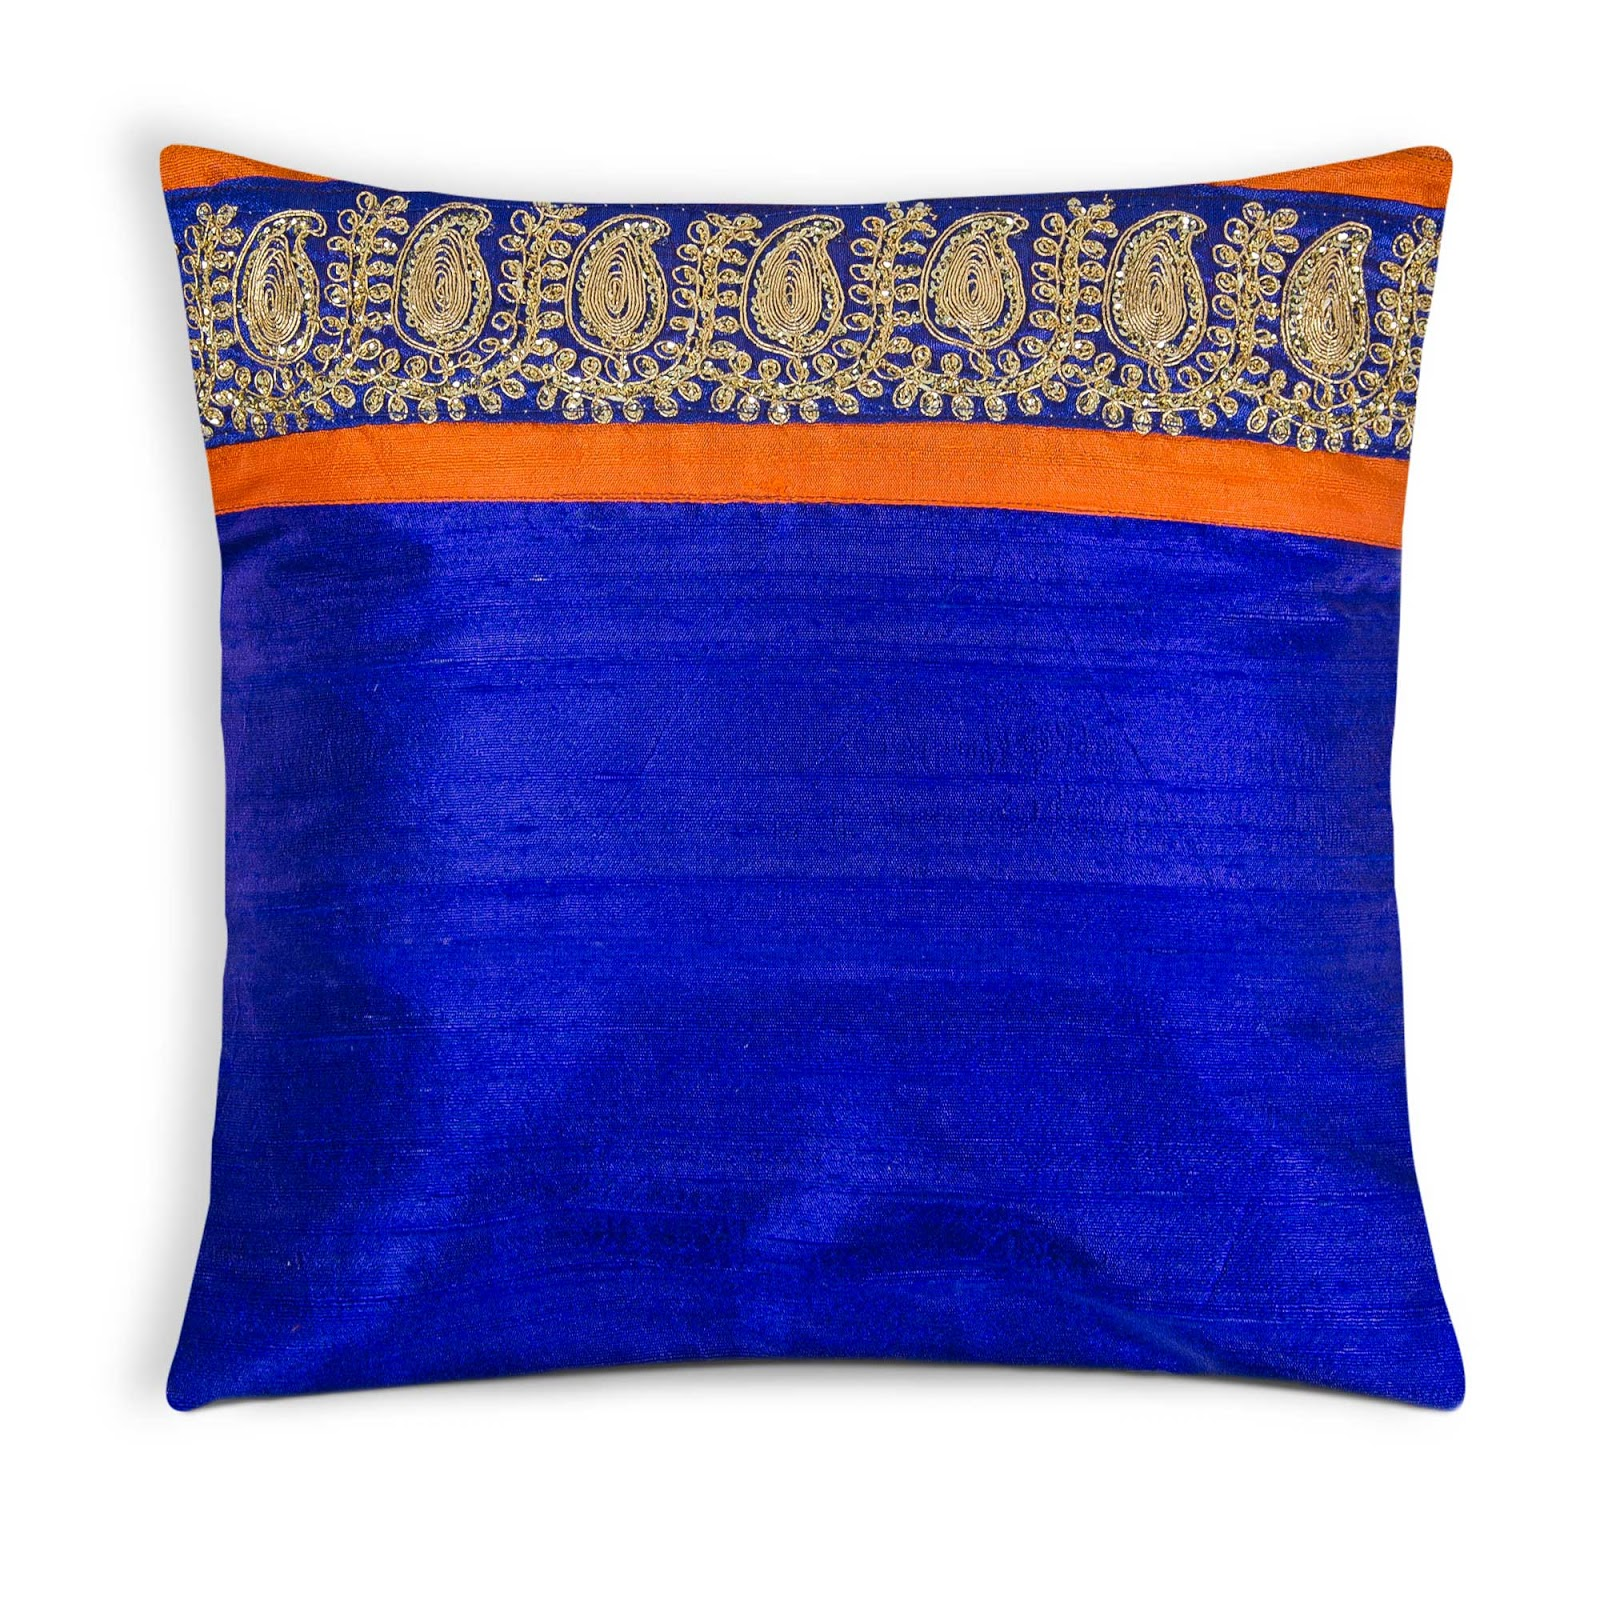 Silk Pillows and Shams Royal Blue and Orange with Gold